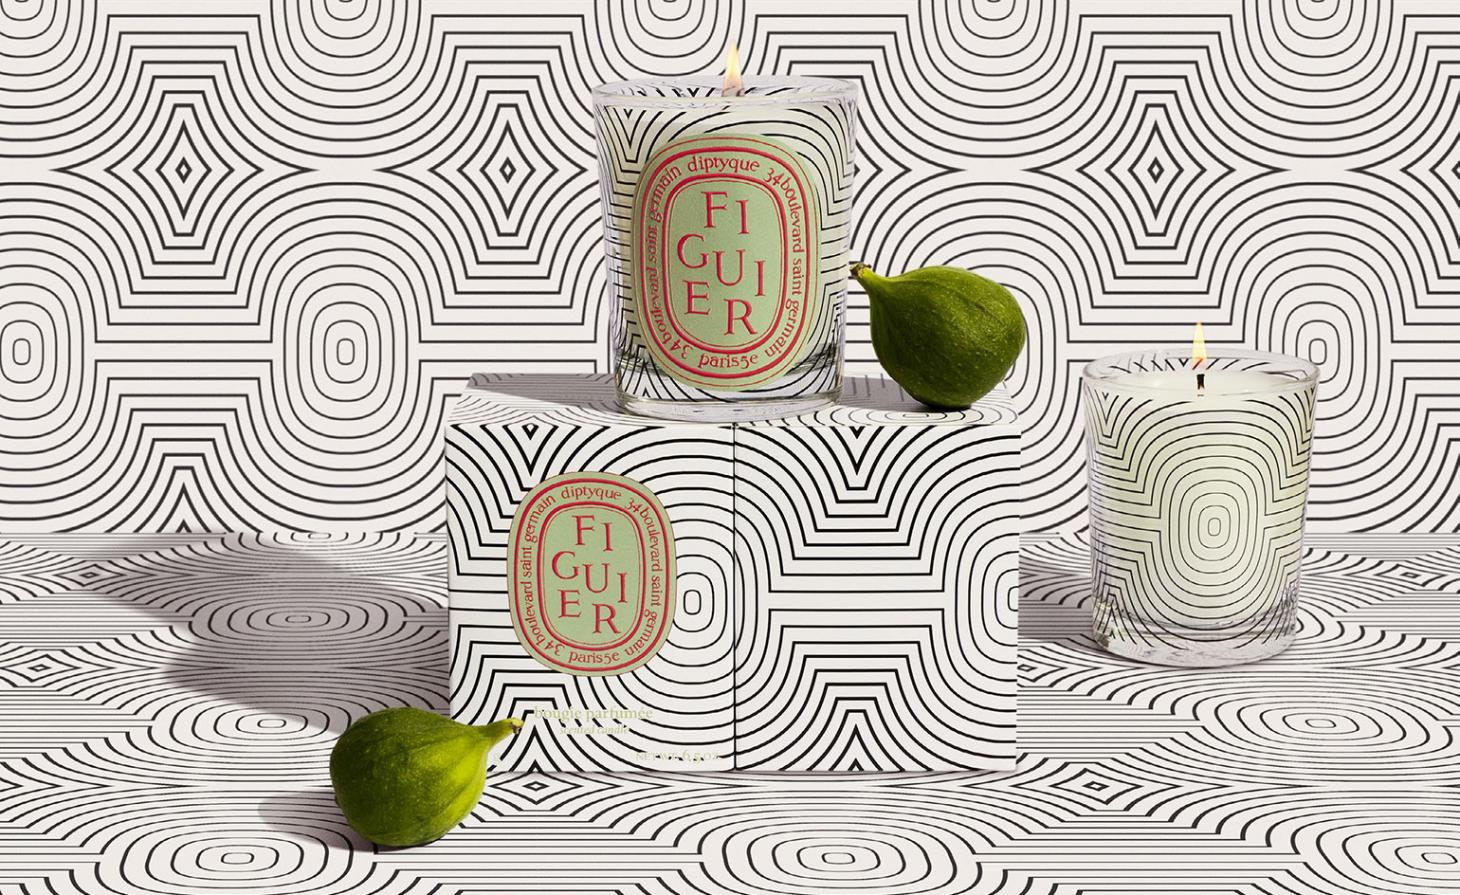 diptyque 60th anniversary figuire candle with balck and white graphic designs